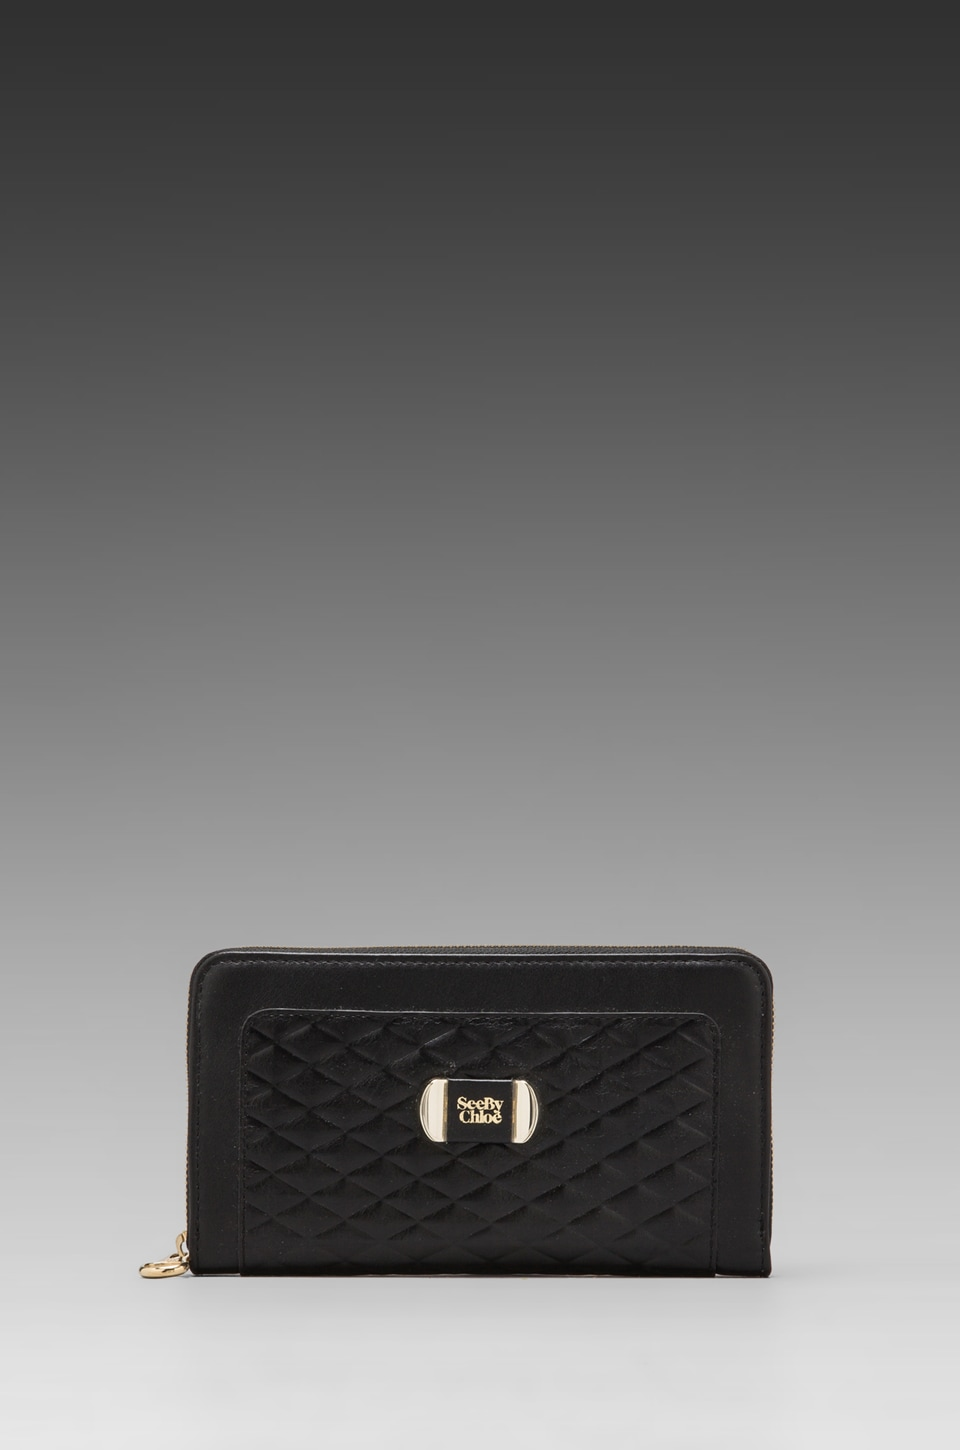 See By Chloe Mina Long Zipped Wallet in Black